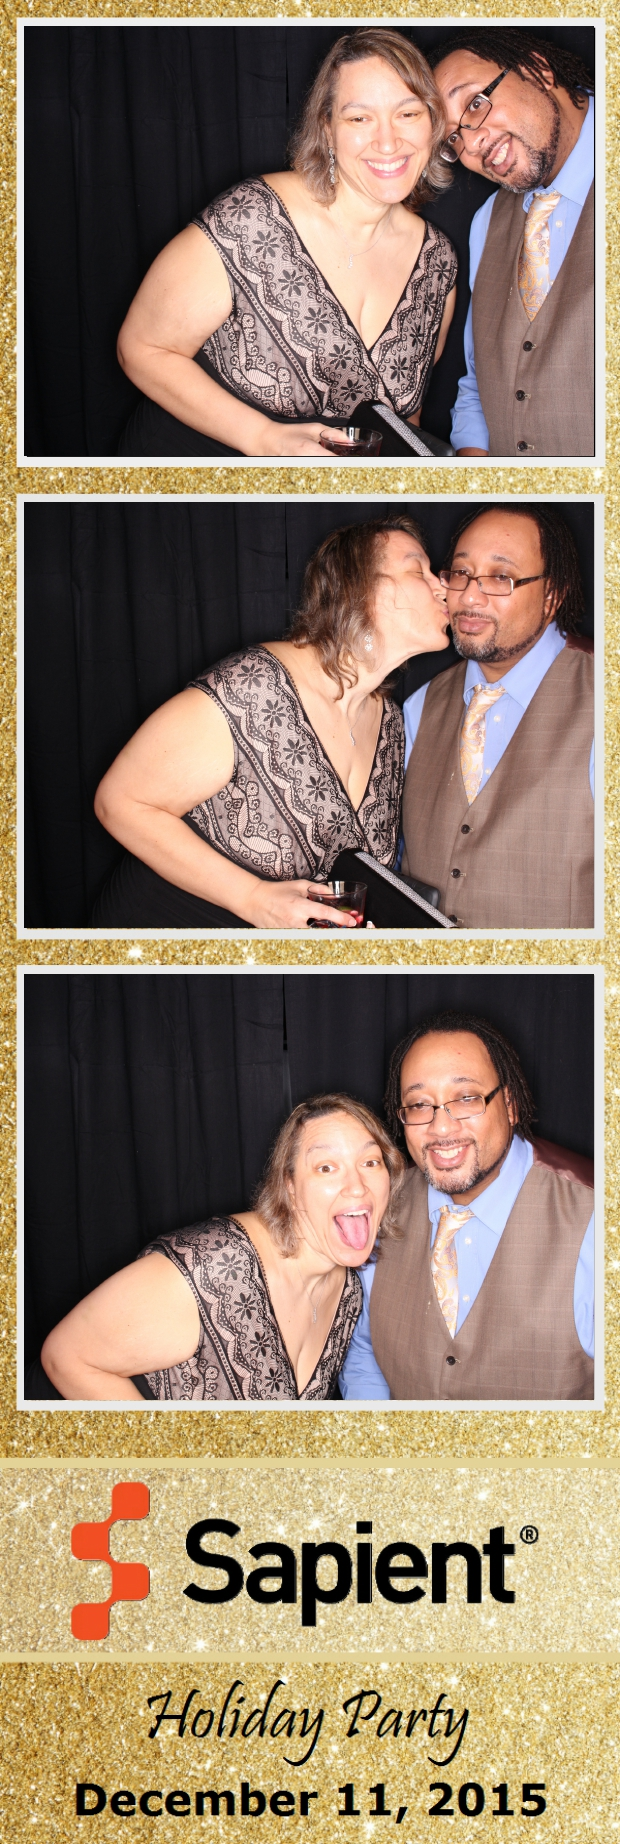 Guest House Events Photo Booth Sapient Holiday Party (57).jpg